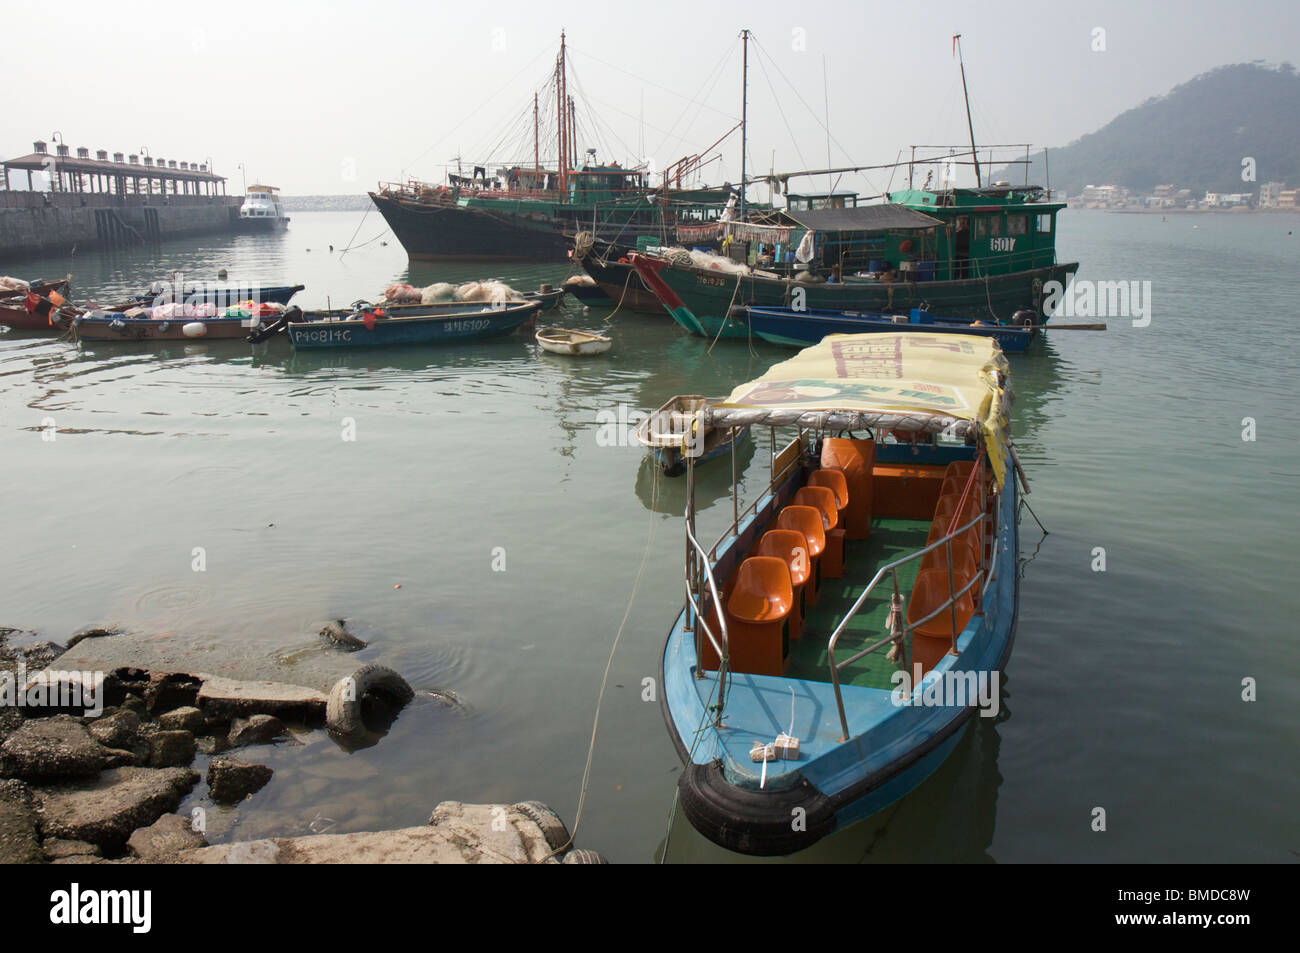 Fishing boats and ferry and tourist boat in Tai O harbour on Lantau Island near Hong Kong in China - Stock Image